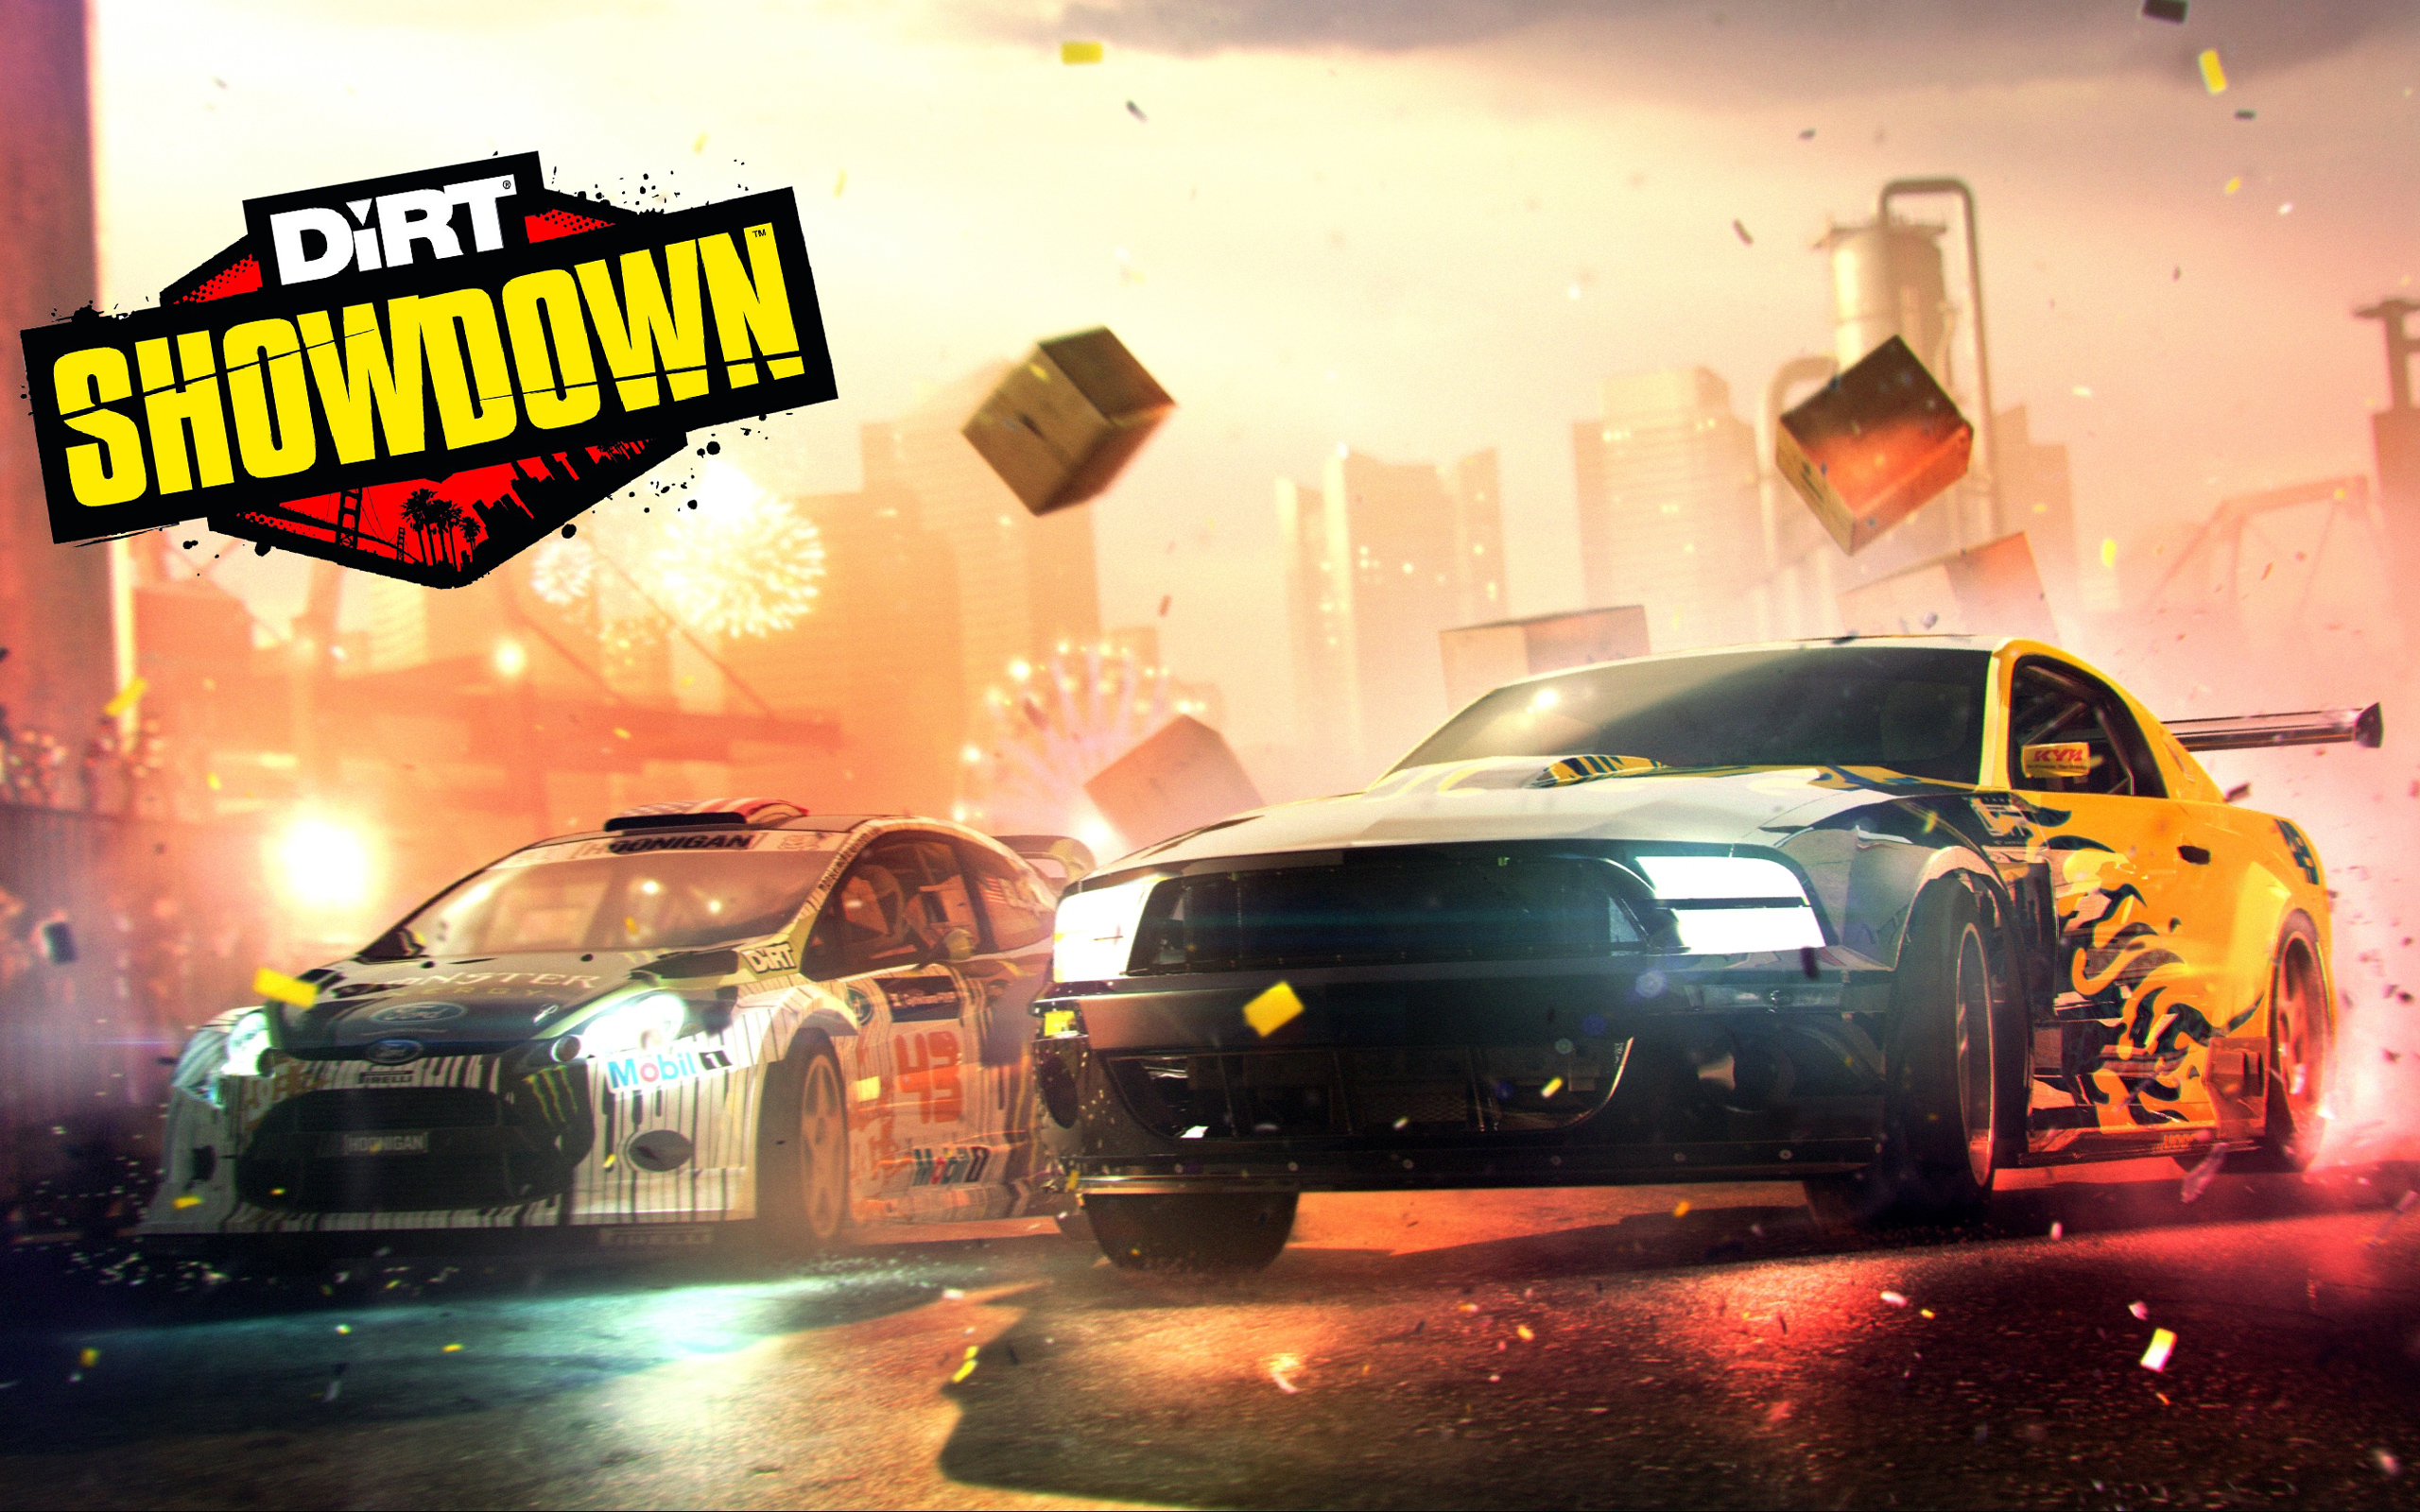 Dirt Showdown 509.36 Kb